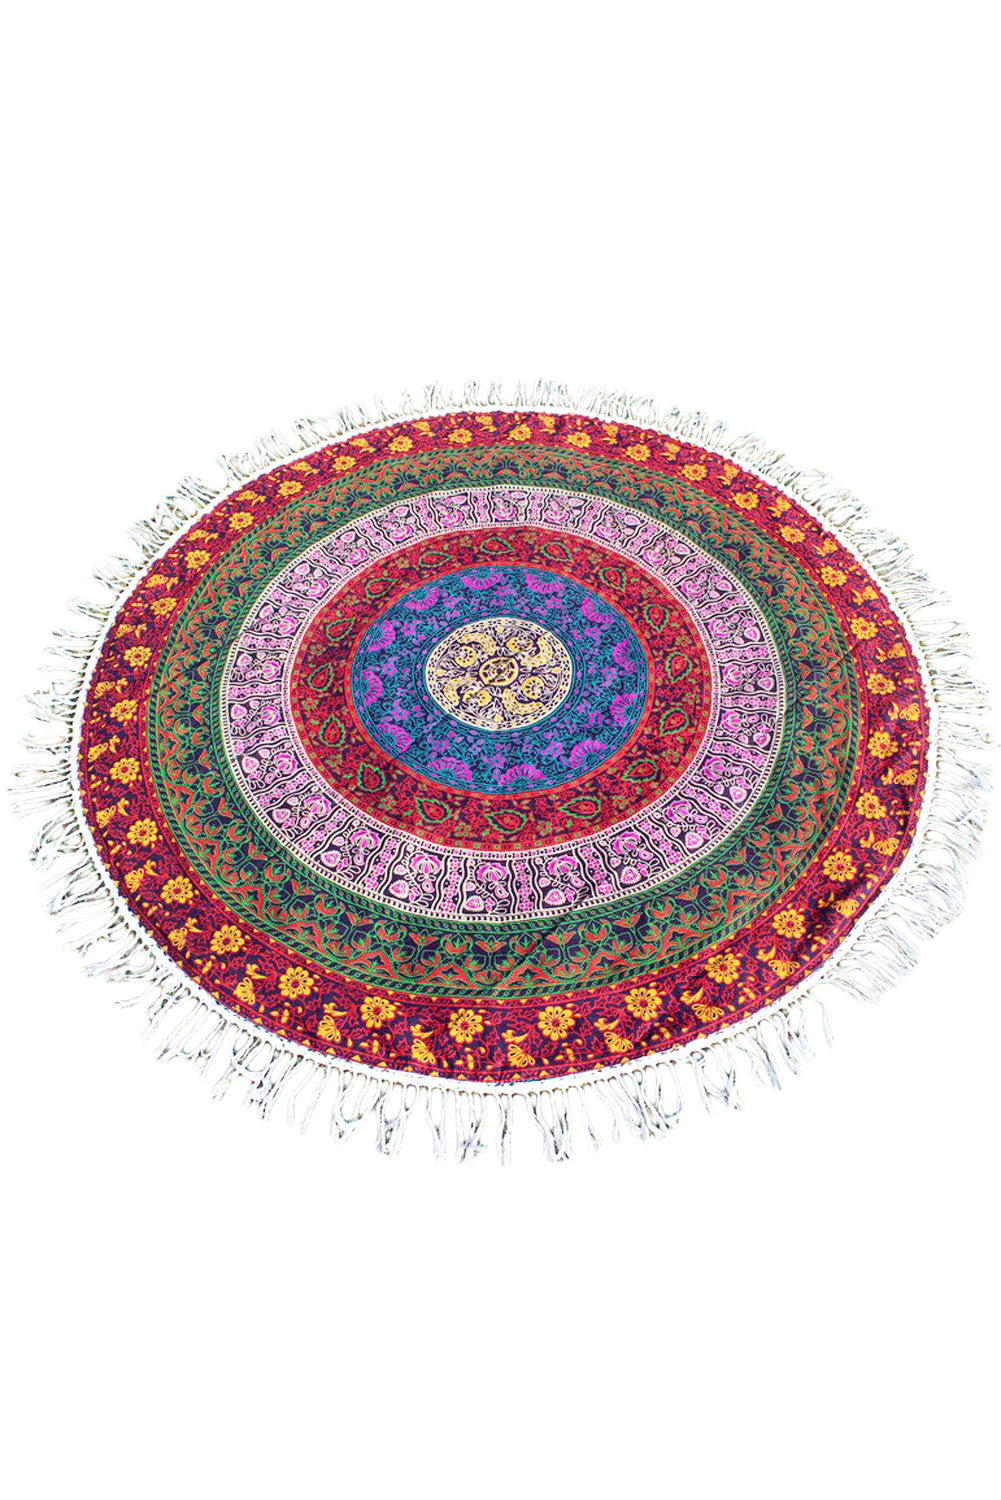 Cotton Mandala Round Tapestry Yoga Mat / Beach Towel with Tassel Fringing